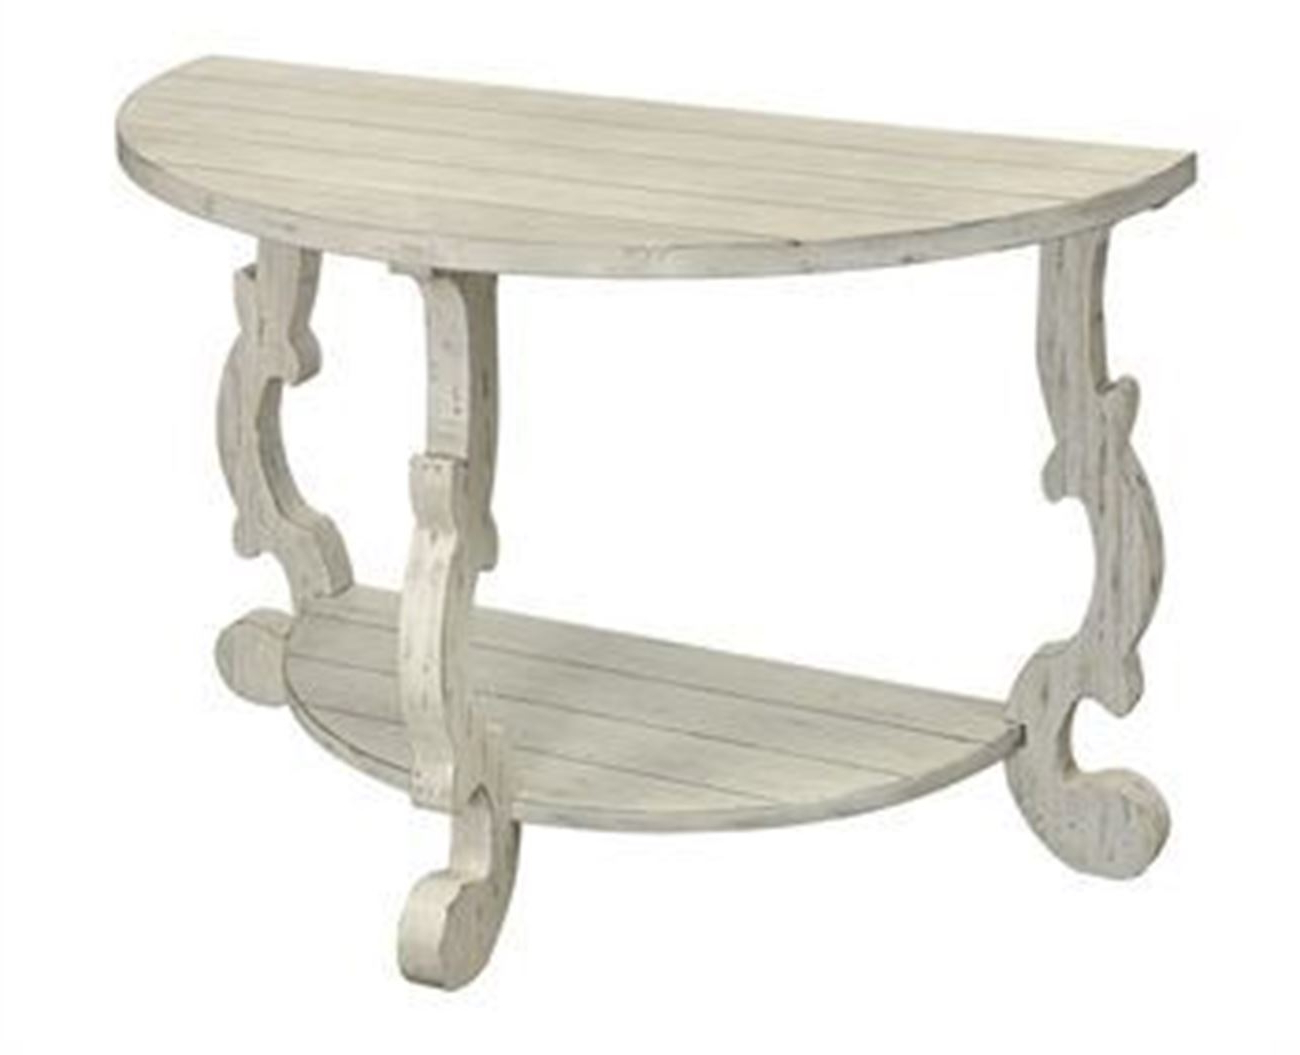 Demilune Console Table Within Clairemont Reviews Crate And Barrel With Regard To Most Current Clairemont Demilune Console Tables (View 10 of 20)